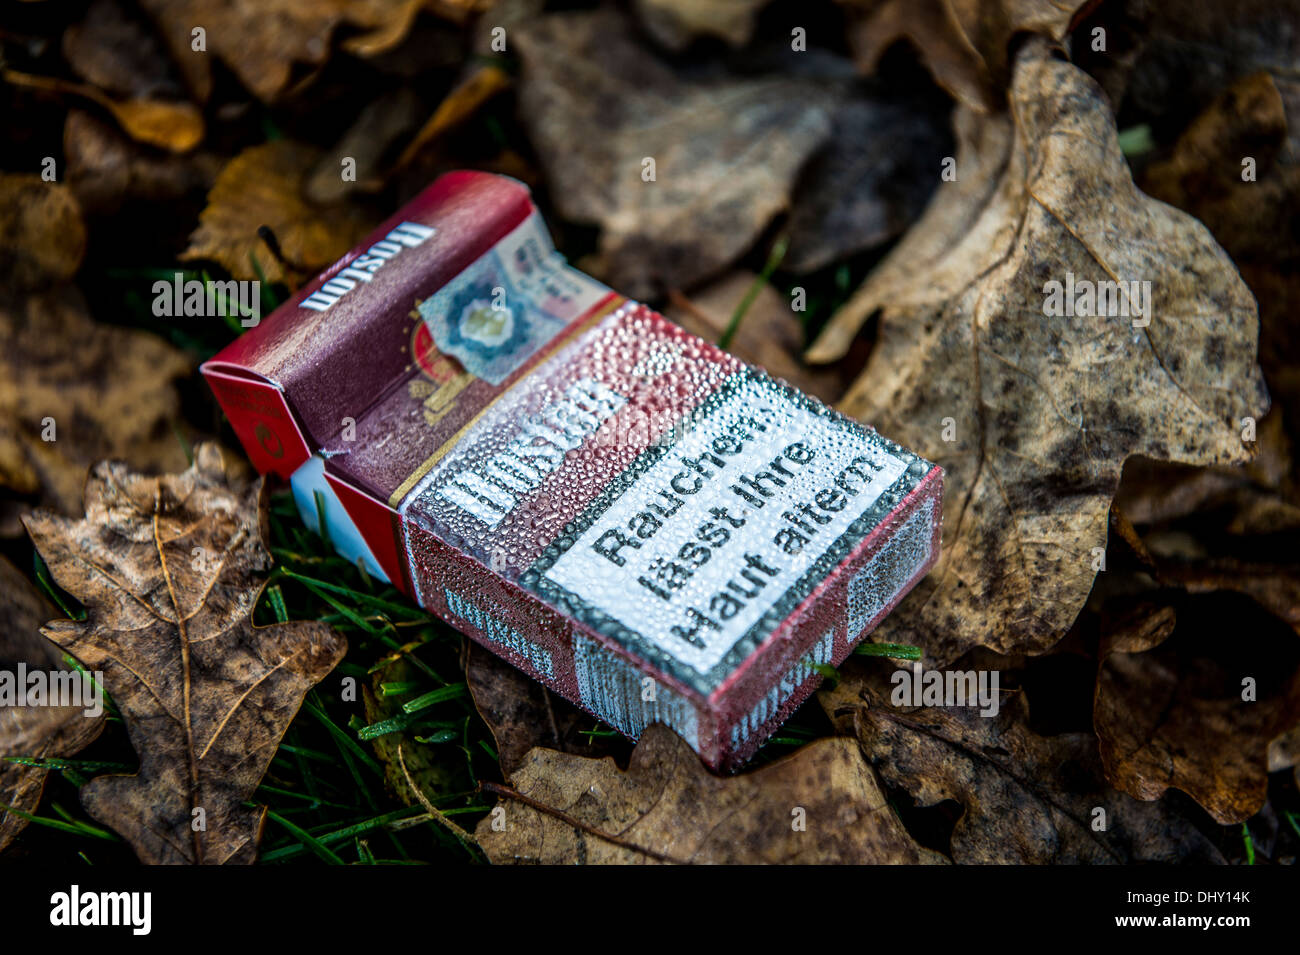 Discarded Cigarette Packet on Autumn Leaves - Stock Image